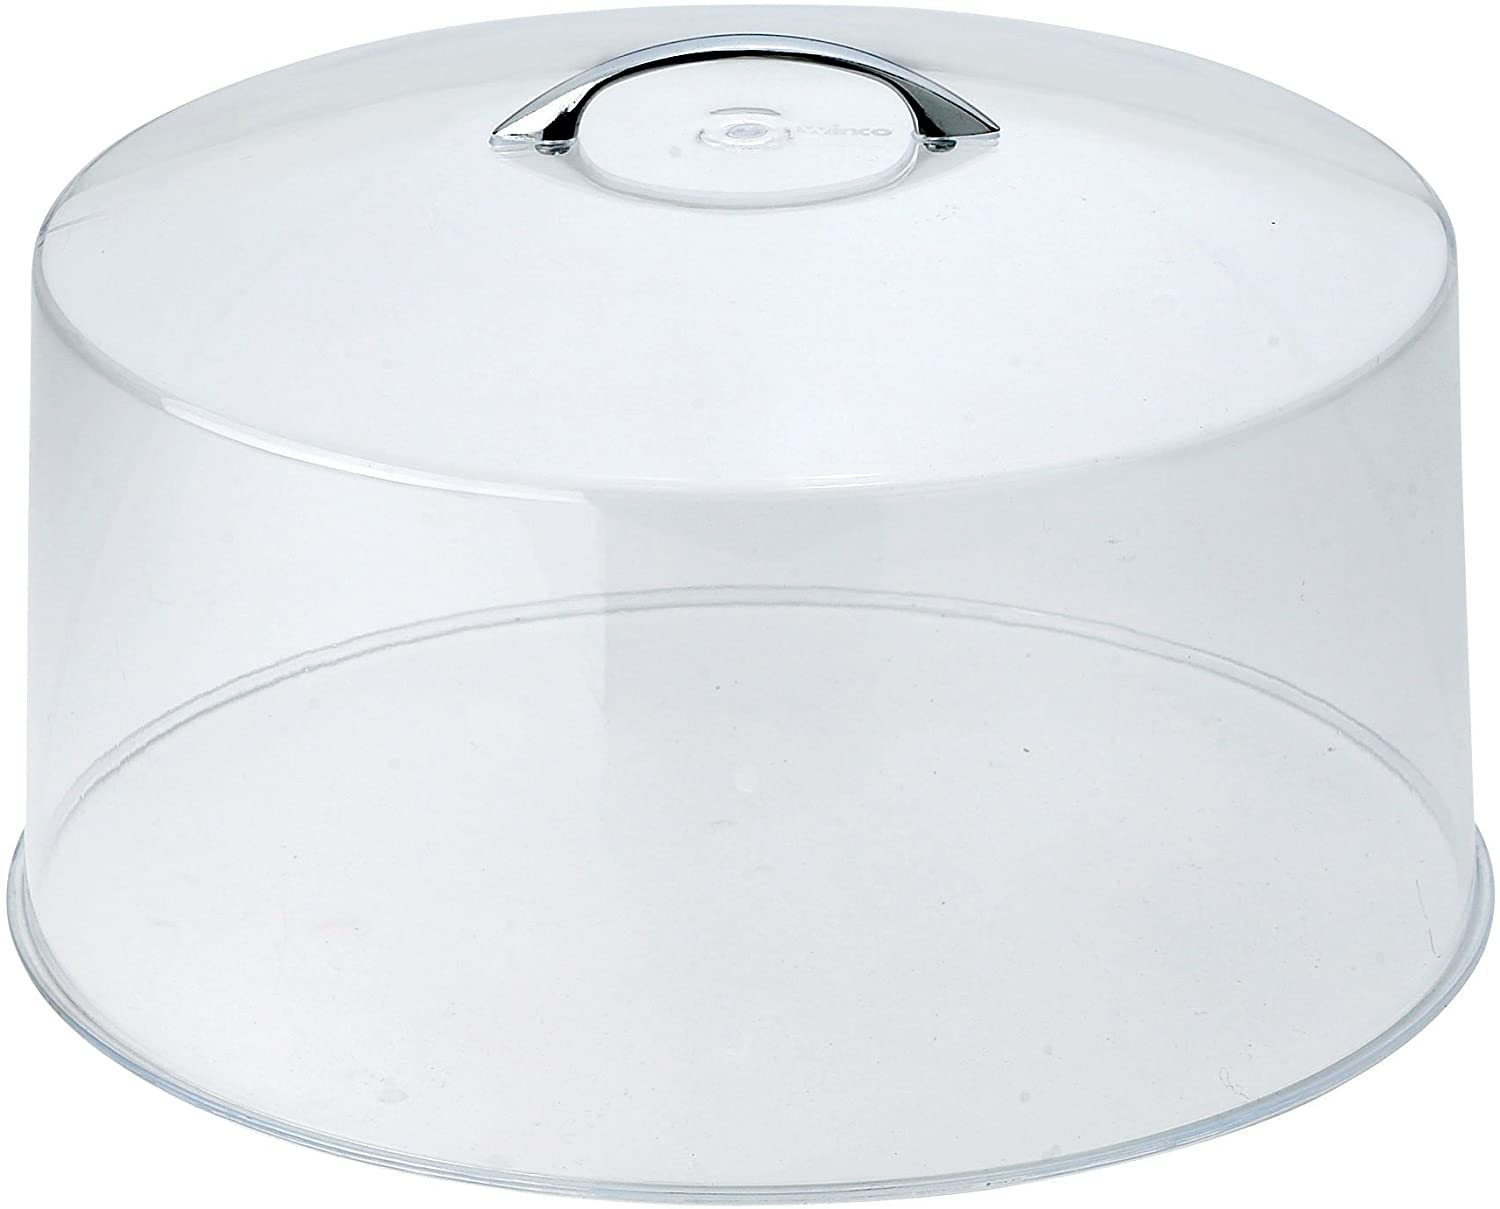 Winco, Clear CKS-13C Round Acrylic Cake Stand Cover, 12-Inch, 1 Pack